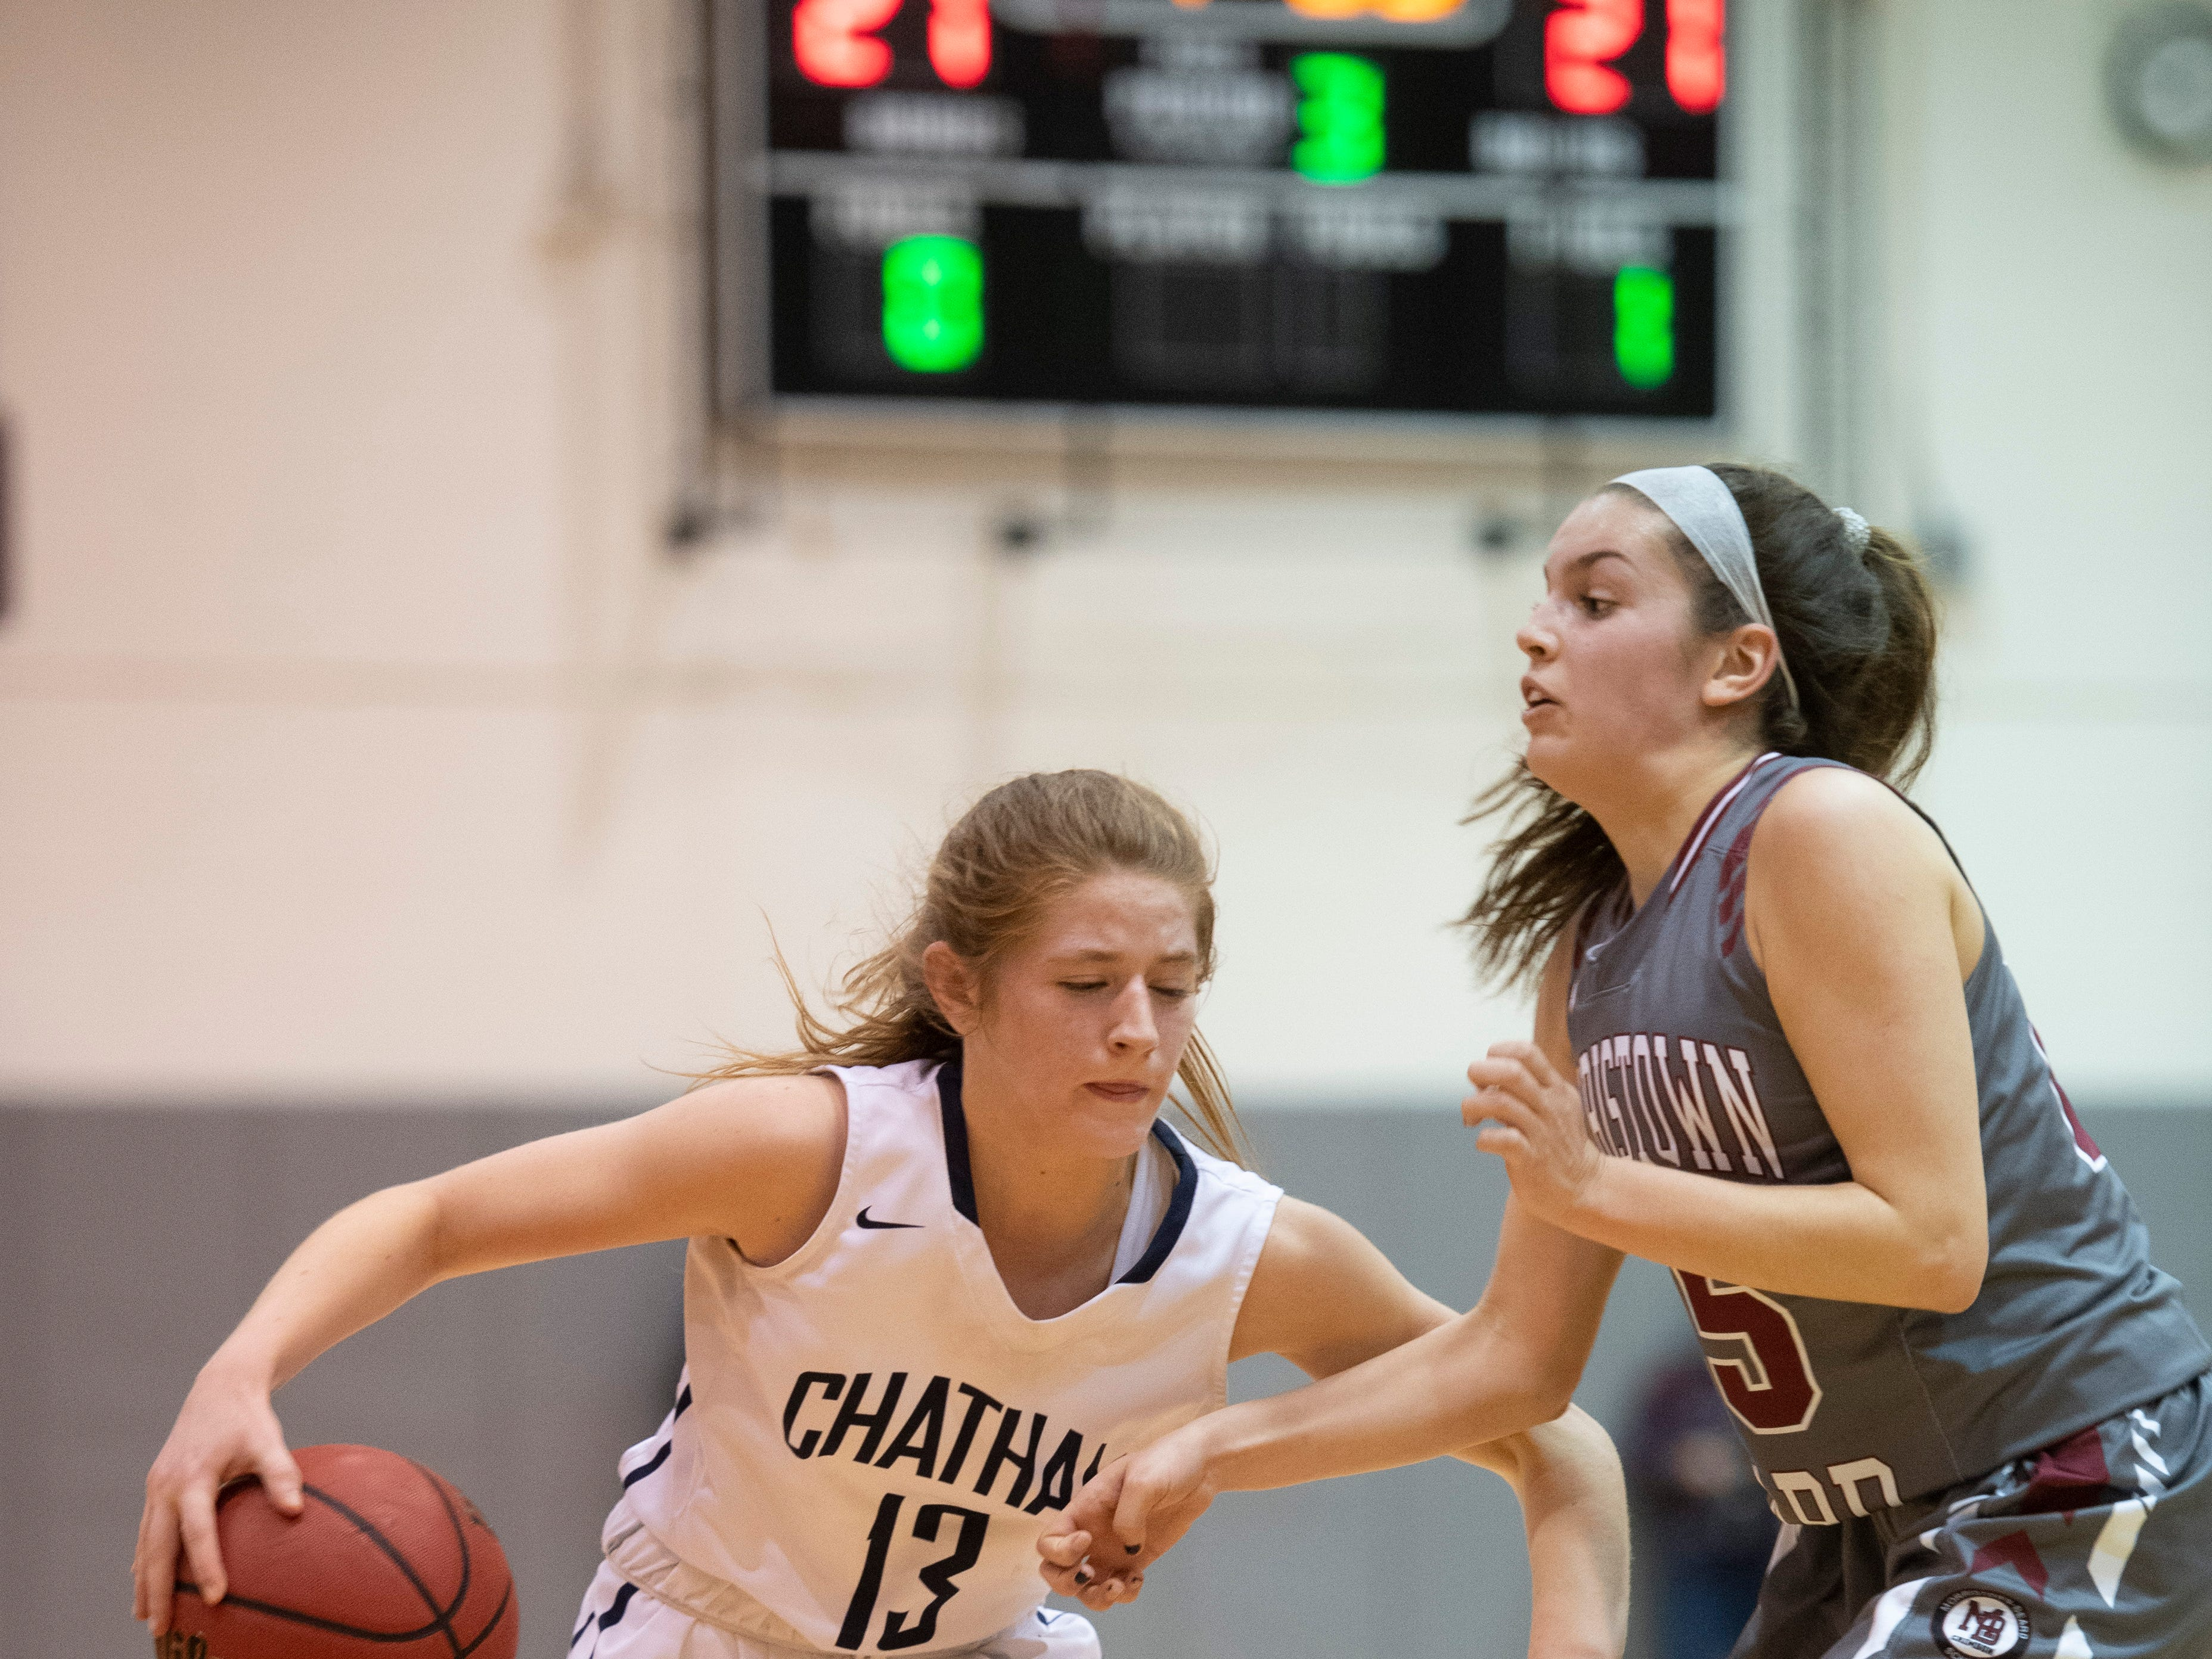 Chatham junior Maddie Hartnett tries to get past Morristown-Beard's Christina DeMattheis during the Morris County Tournament girls basketball final at County College of Morris in Randolph on Friday, February 22, 2019.